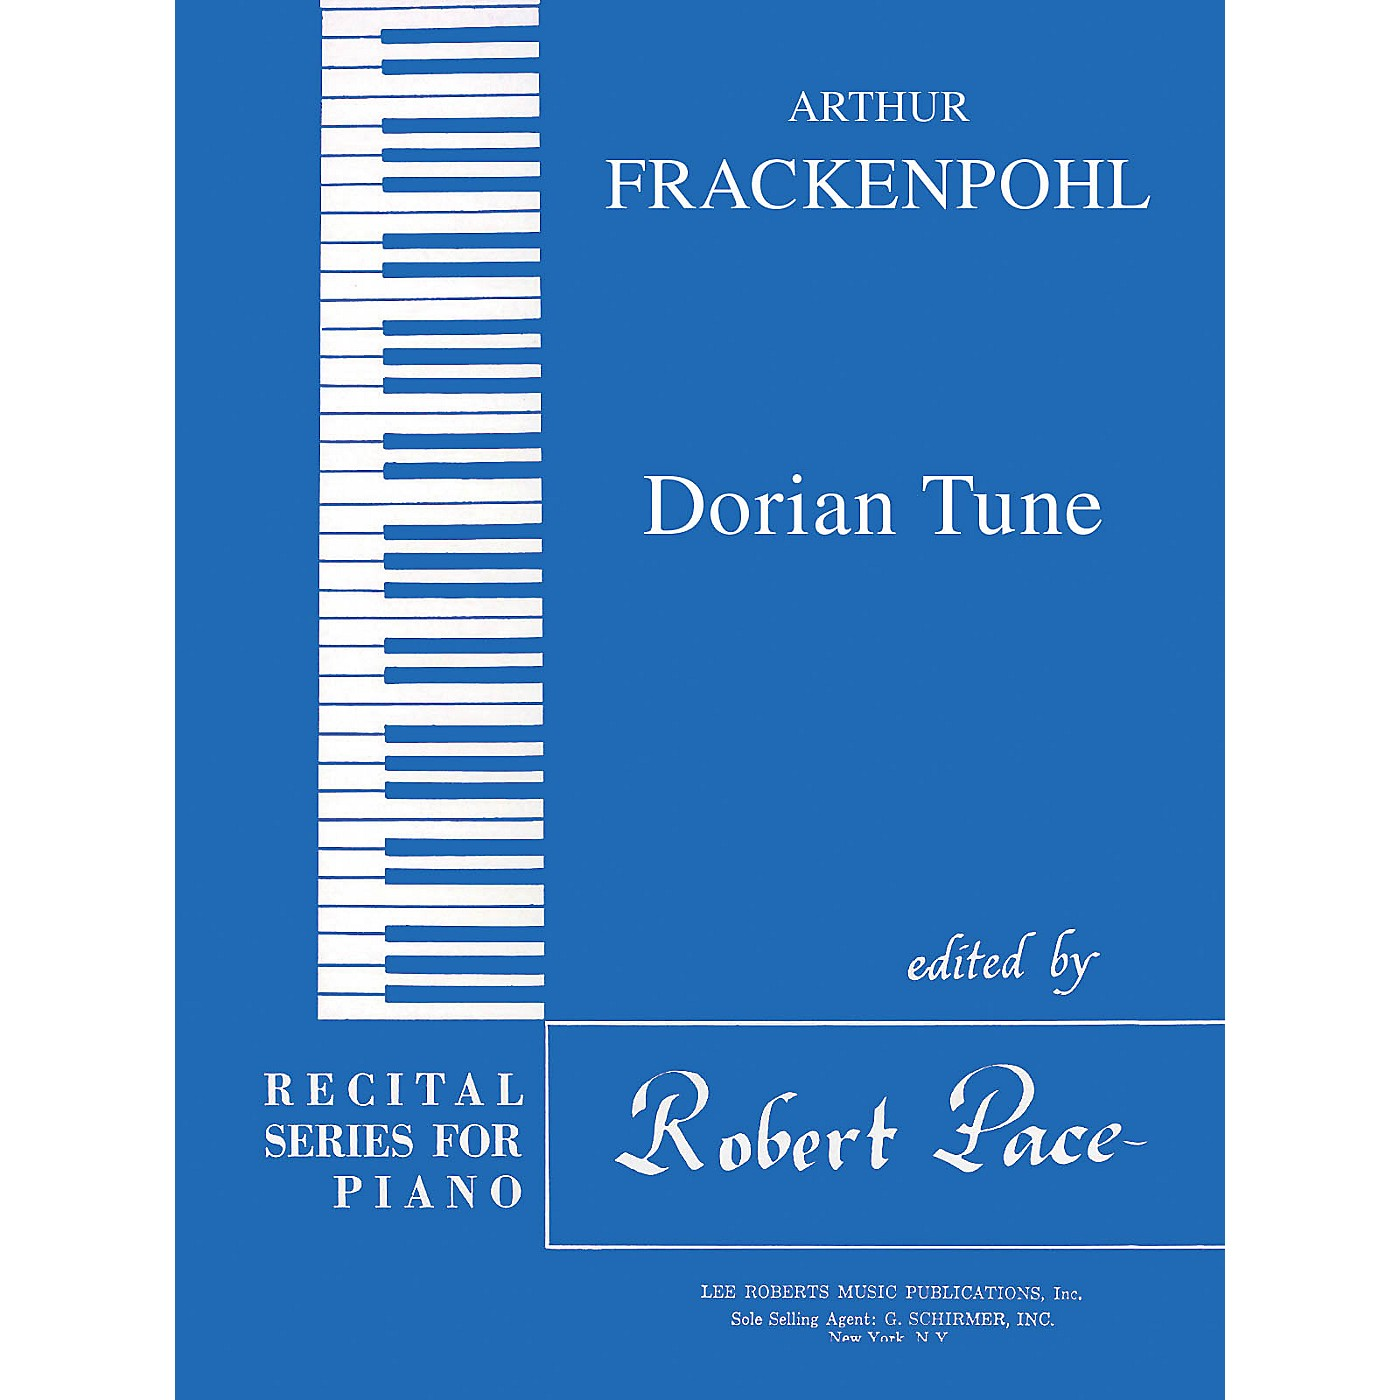 Lee Roberts Dorian Tune (Recital Series for Piano, Blue (Book I)) Pace Piano Education Series by Arthur Frackenpohl thumbnail